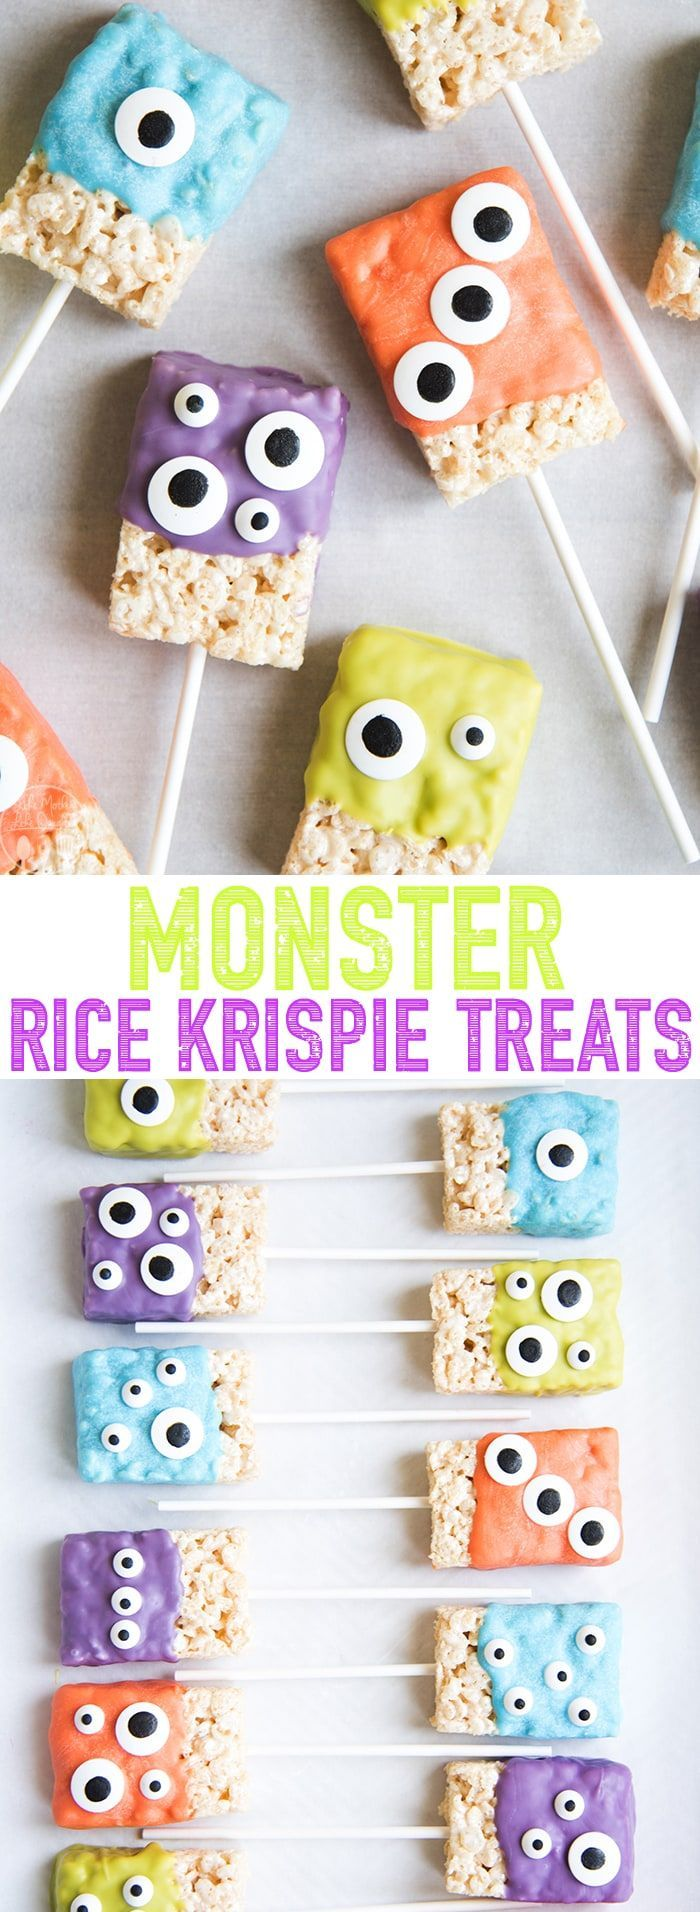 These monster rice krispie treats are the such a cute and festive Halloween treat! Made with only 3 ingredients these Halloween rice krispie treats are so easy to make, and great for kids who love to help in the kitchen! #ricekrispiestreats